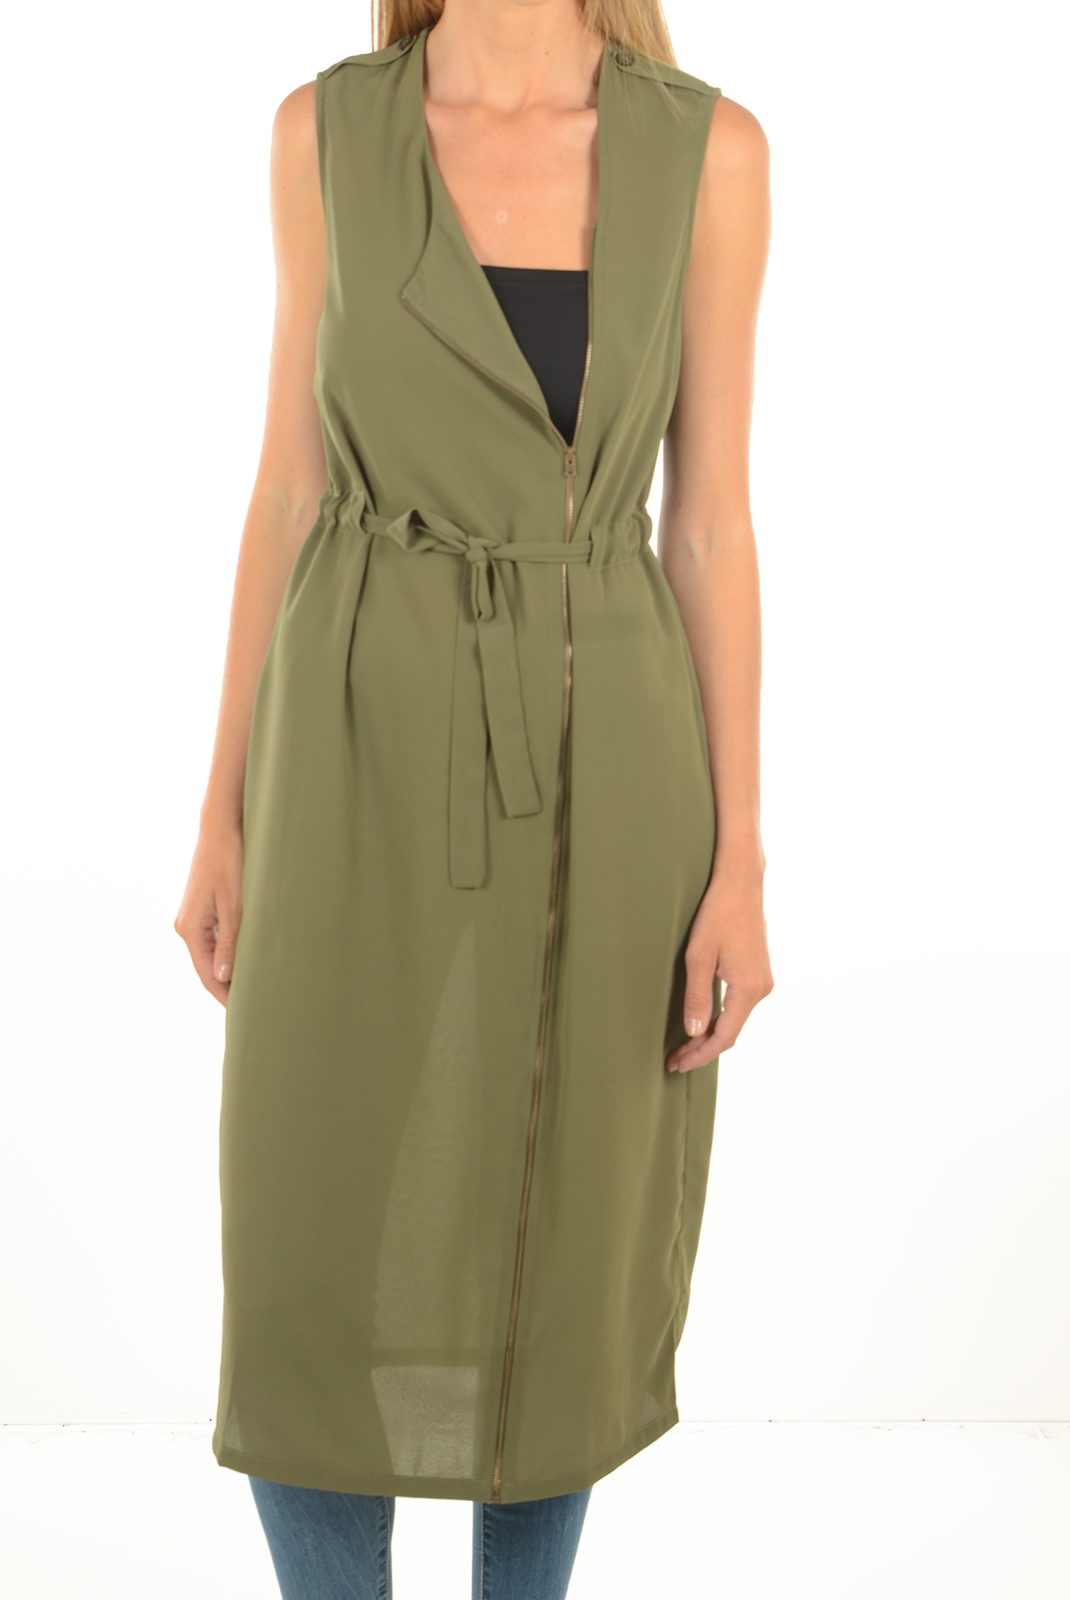 FEMME  Noisy May CAMIL S/L LONG WAISTCOAT 3 IVY GREEN